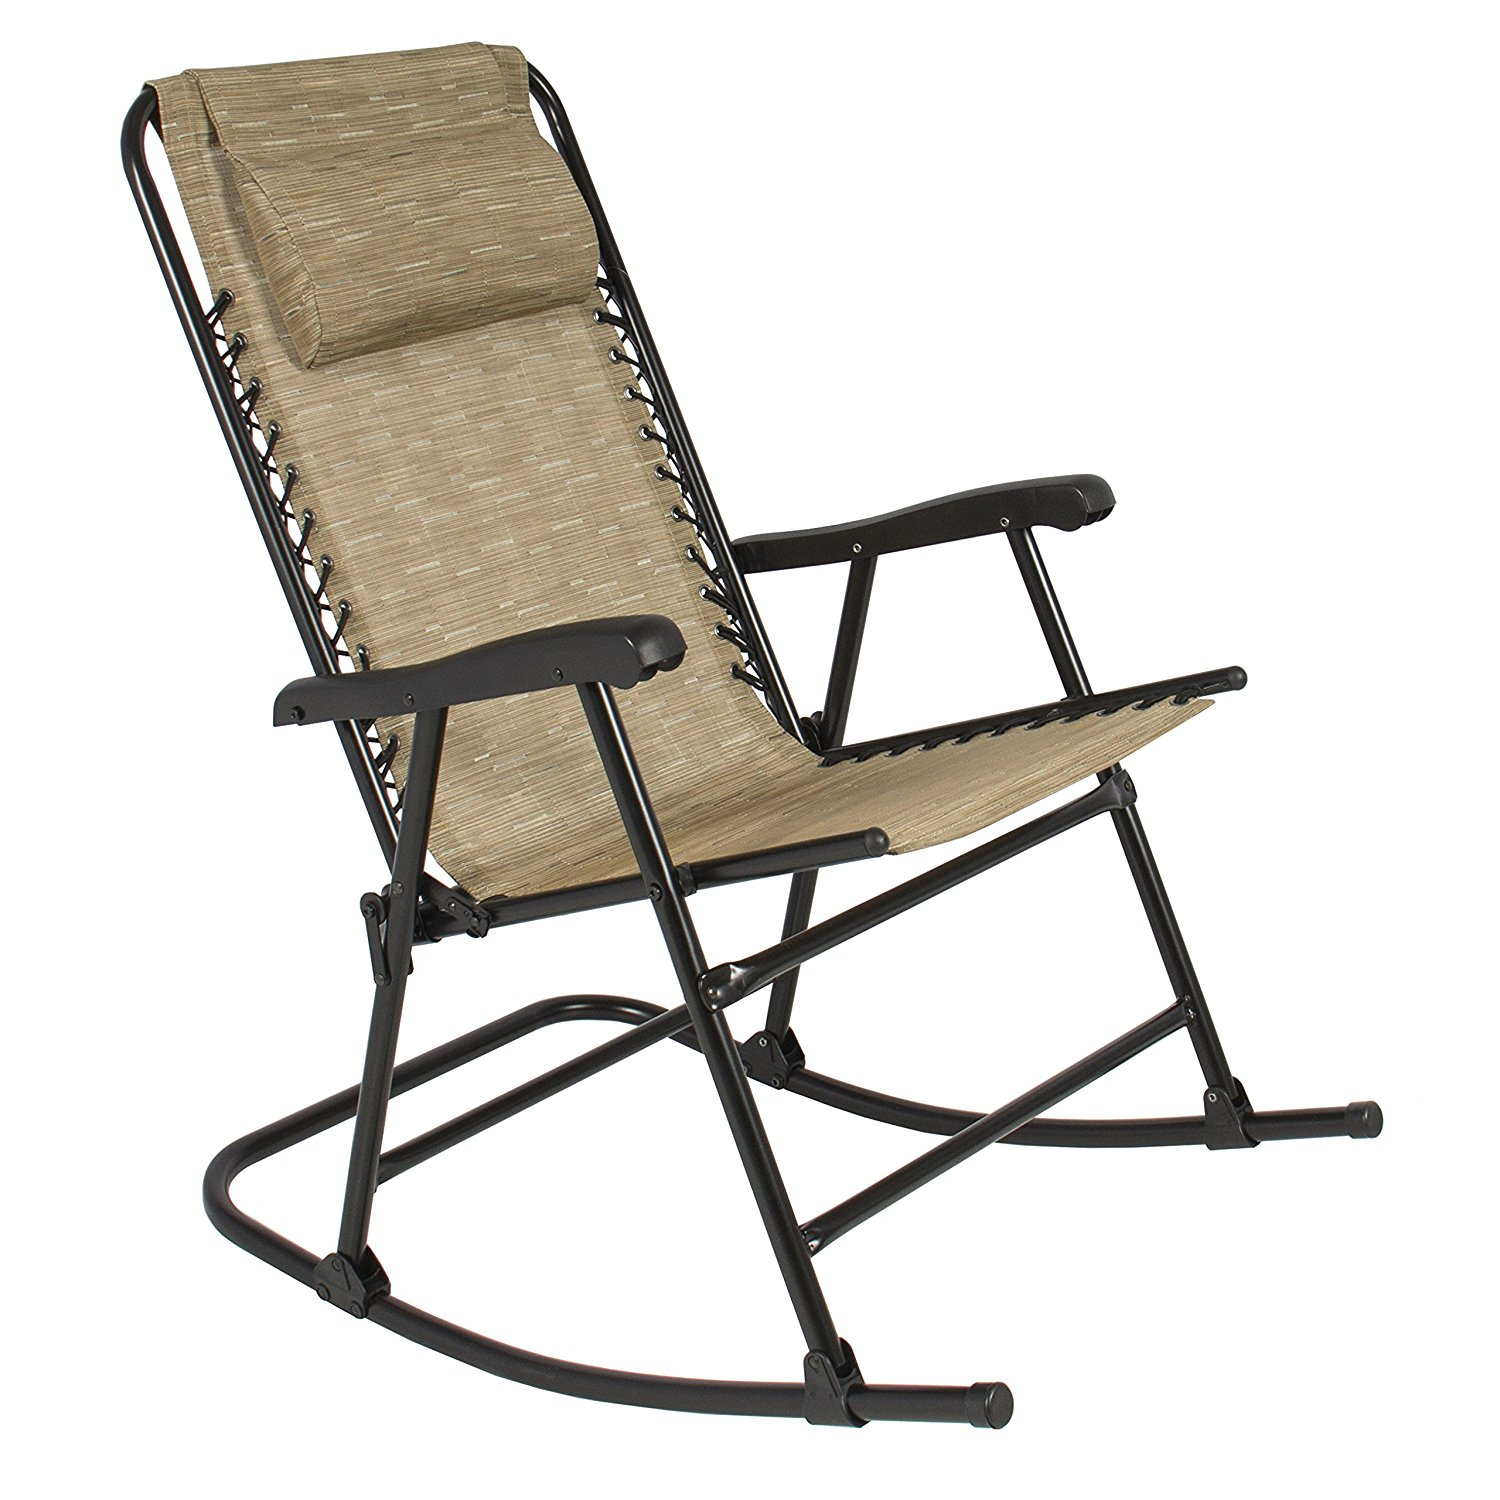 outdoor rocking chair amazon.com: best choice products folding rocking chair foldable rocker  outdoor patio furniture HAFTFQY